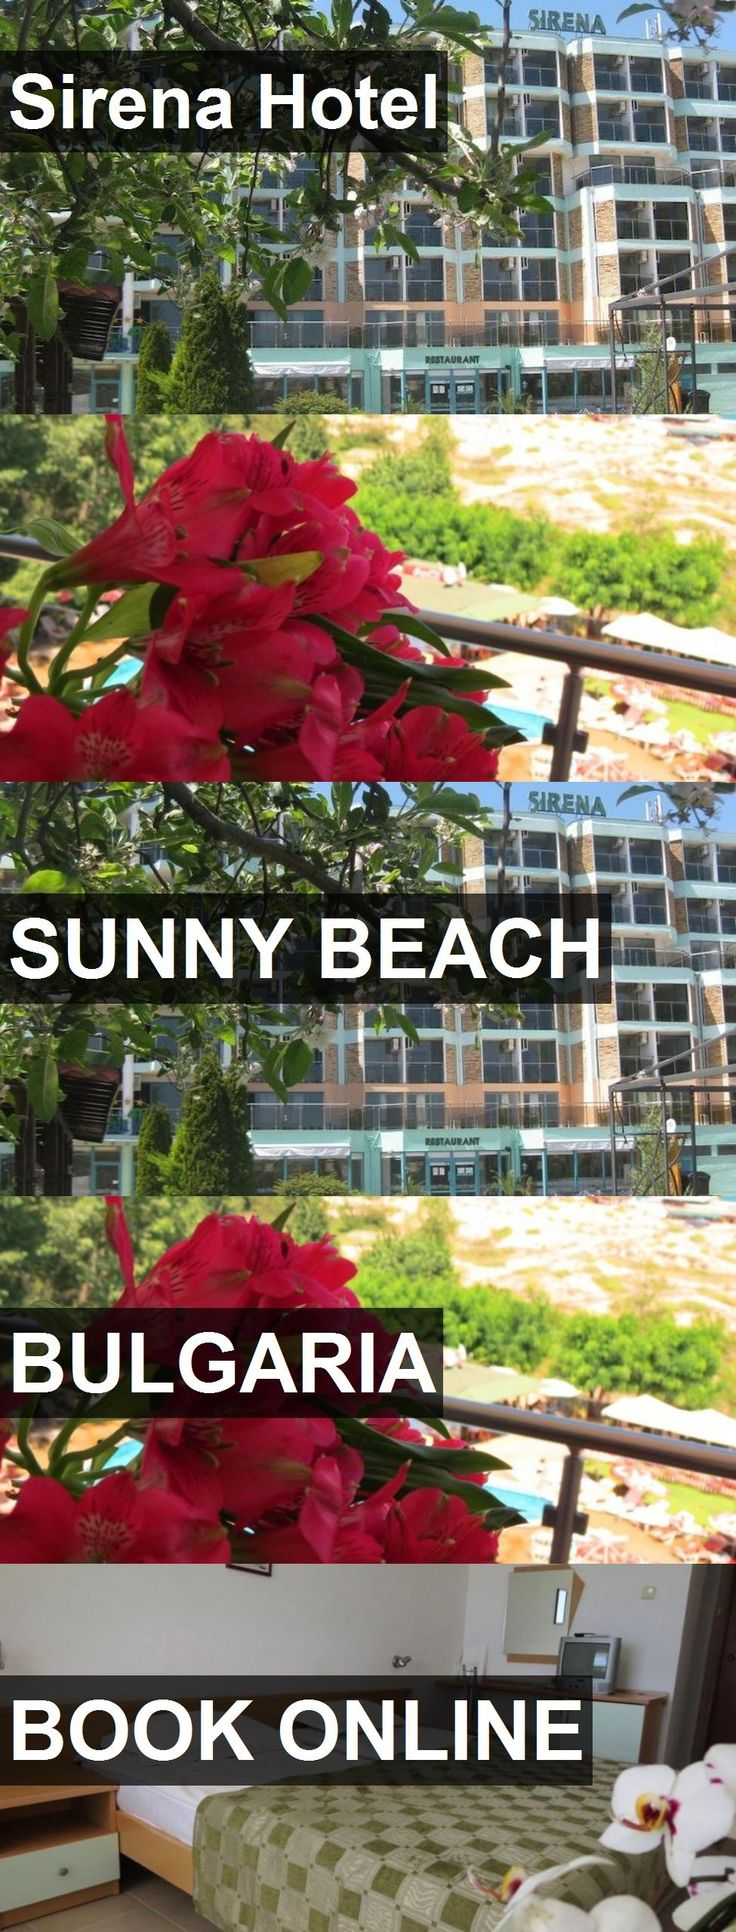 Hotel Sirena Hotel in Sunny Beach, Bulgaria. For more information, photos, reviews and best prices please follow the link. #Bulgaria #SunnyBeach #SirenaHotel #hotel #travel #vacation